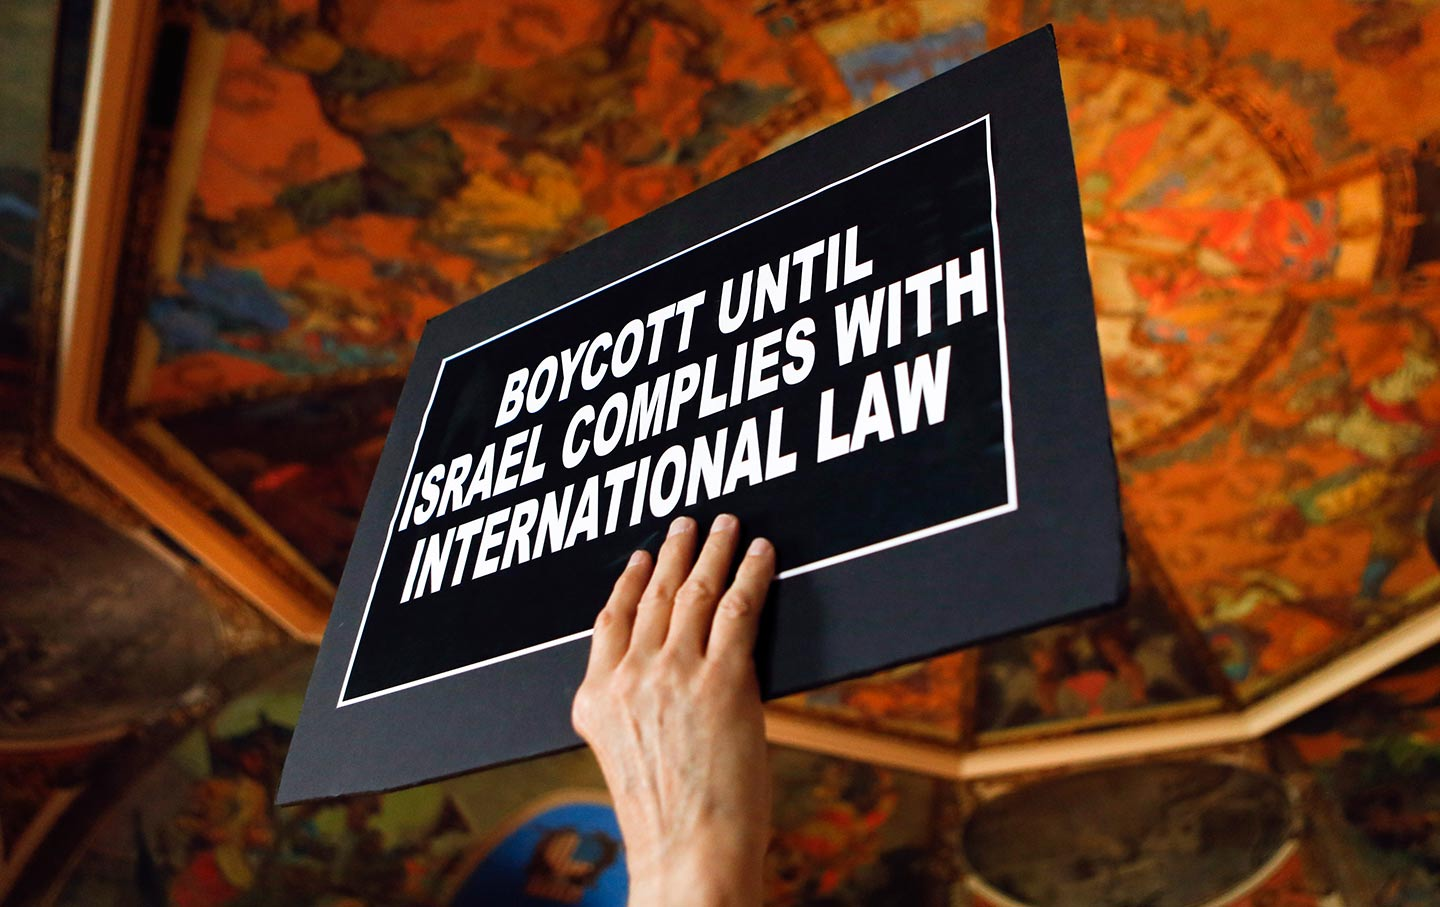 Boycott, Divestment and Sanctions (BDS) sign